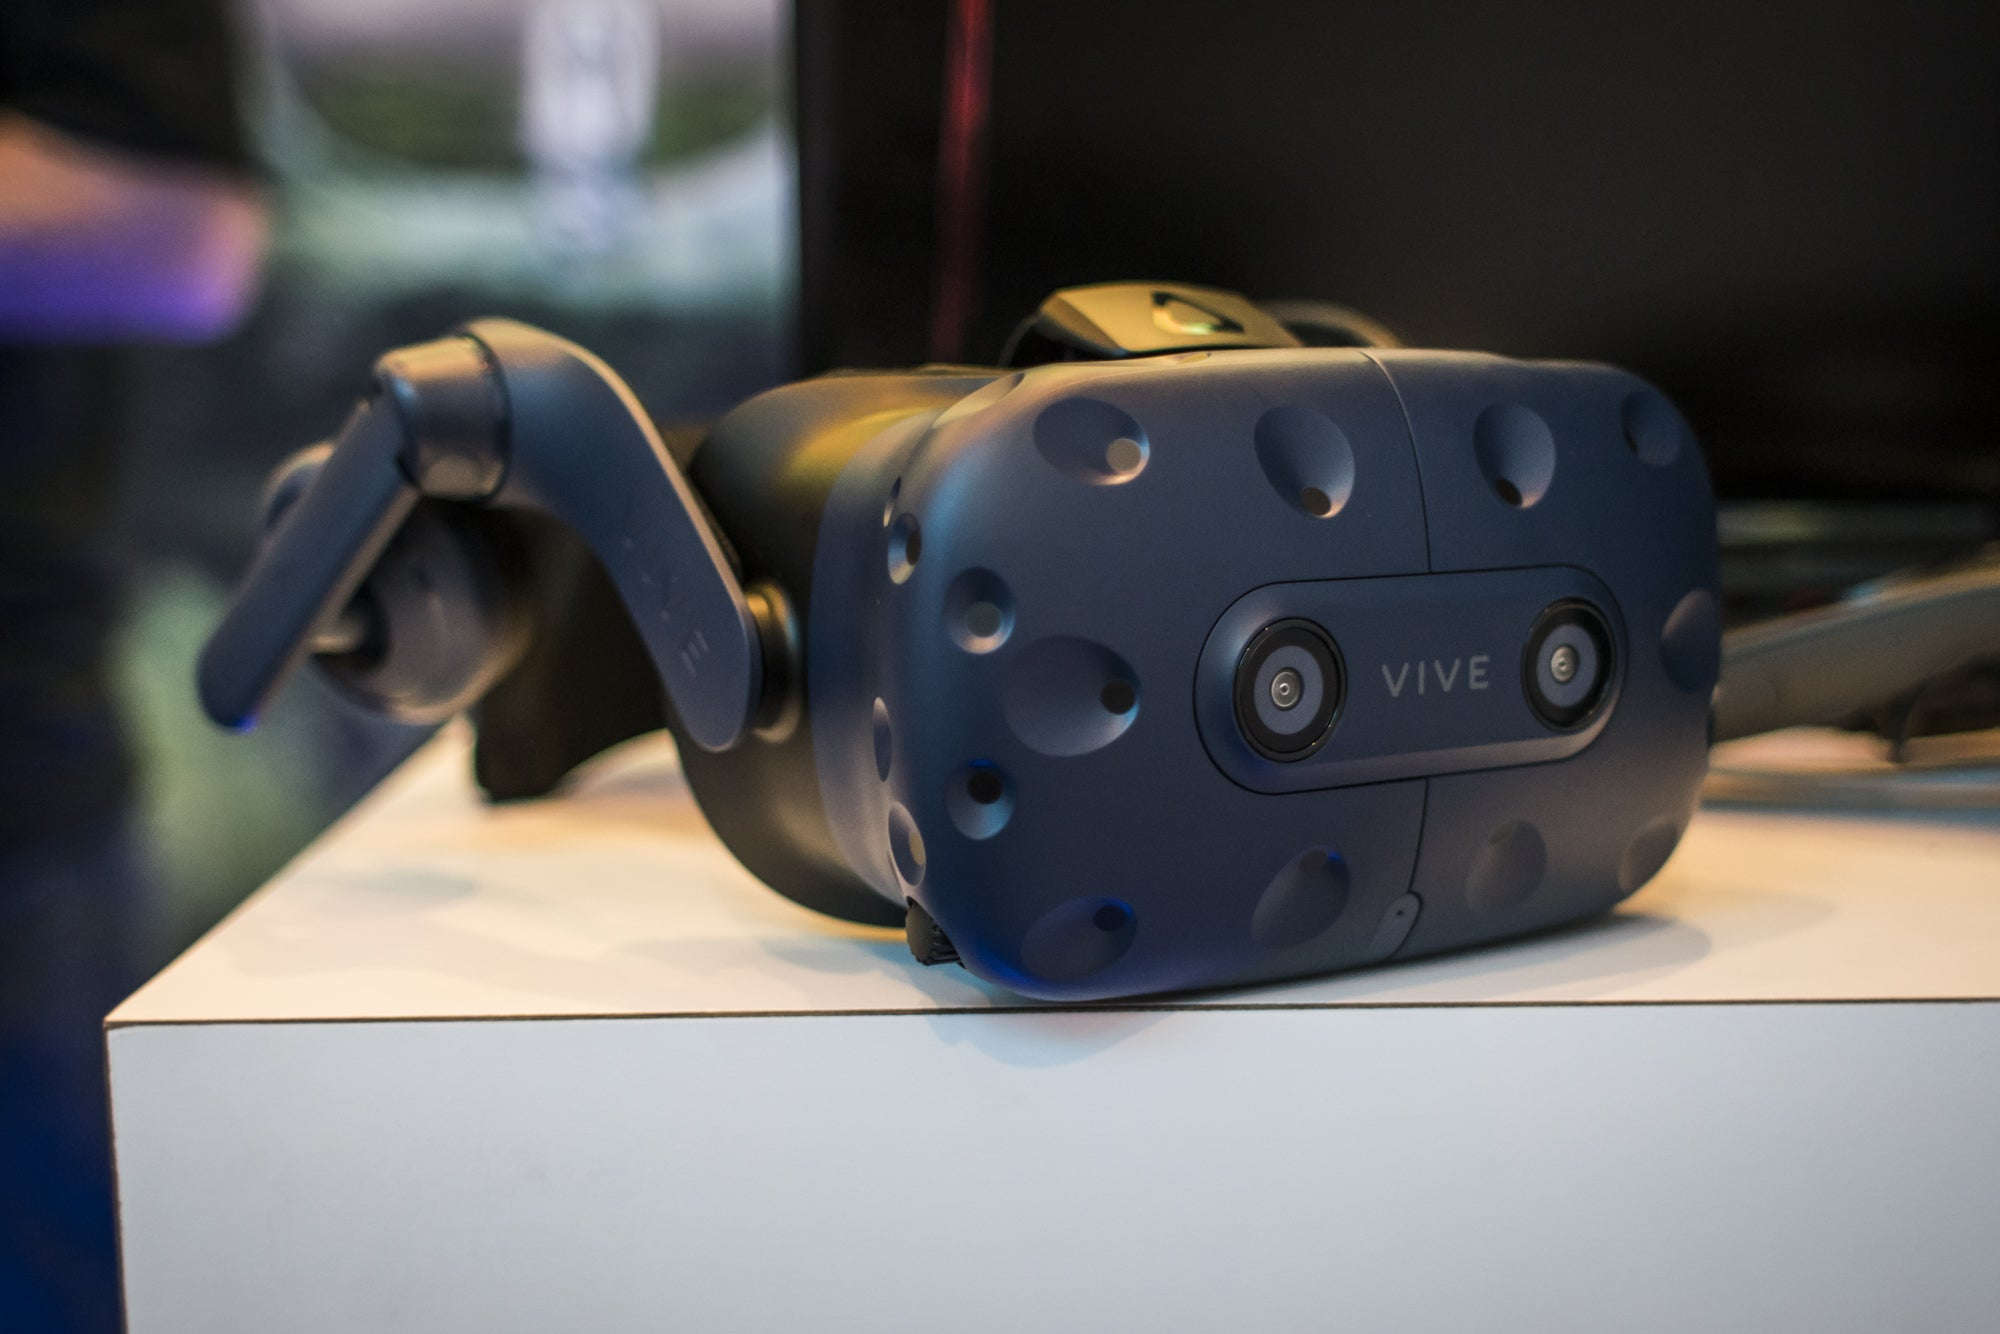 HTC Vive Pro review: Virtual reality without the rough